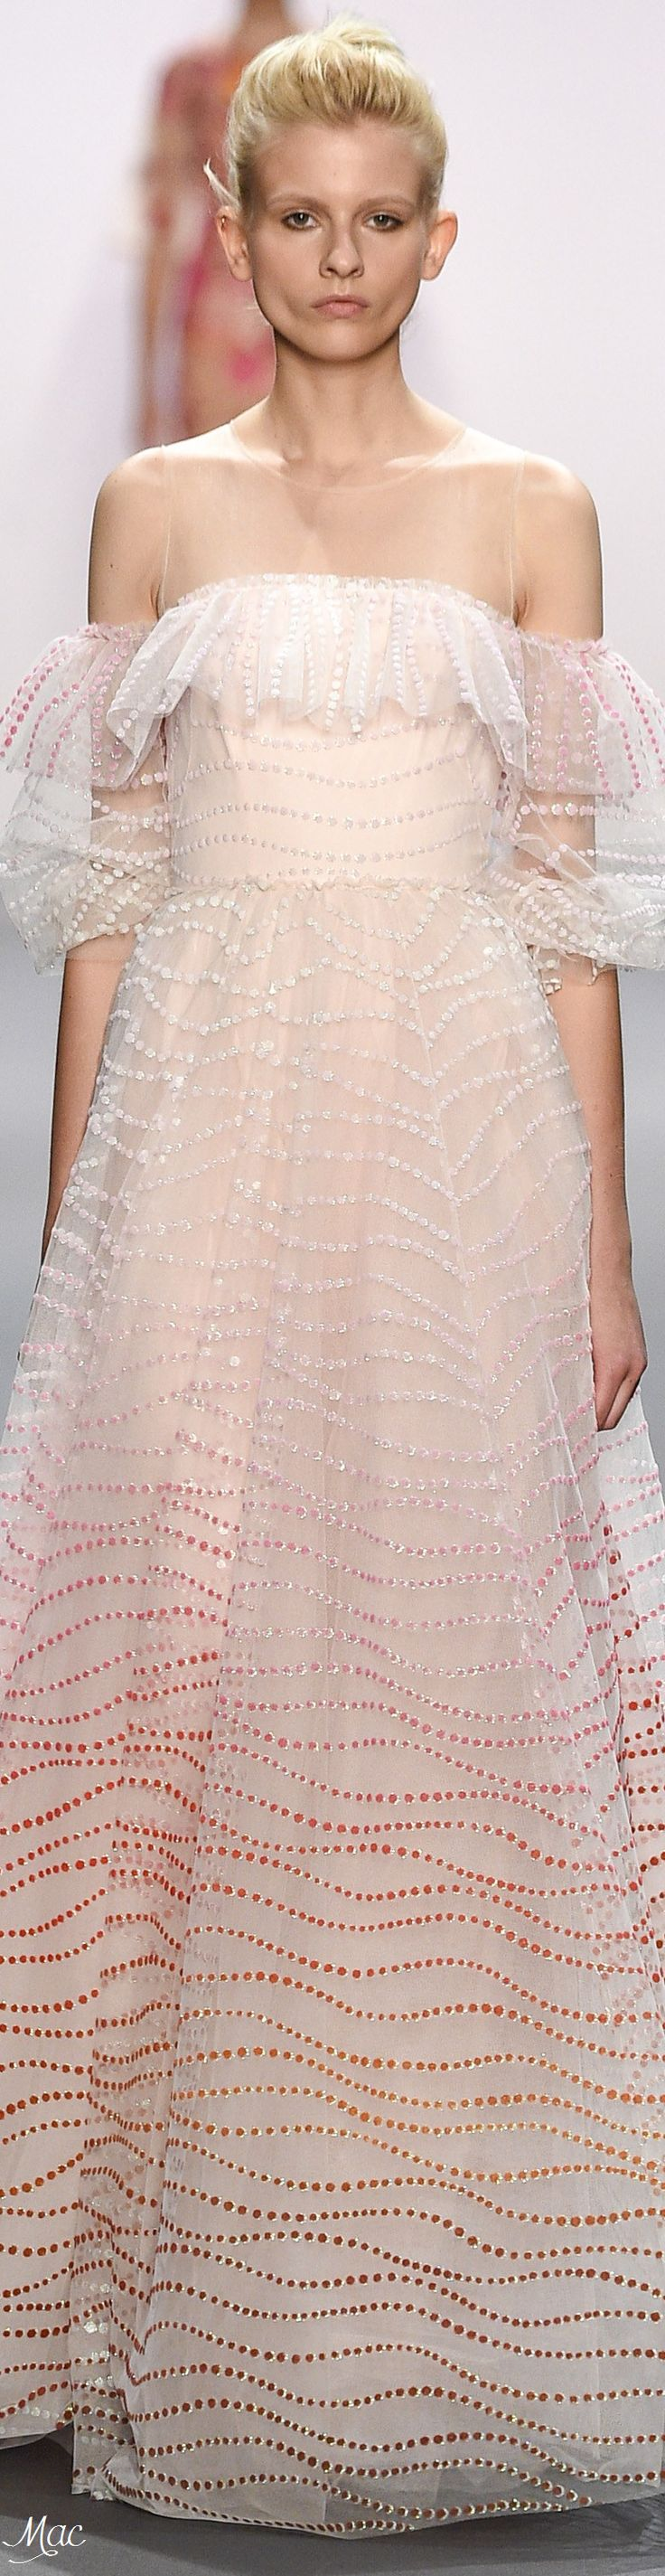 Spring 2017 Ready-to-Wear Jenny Packham